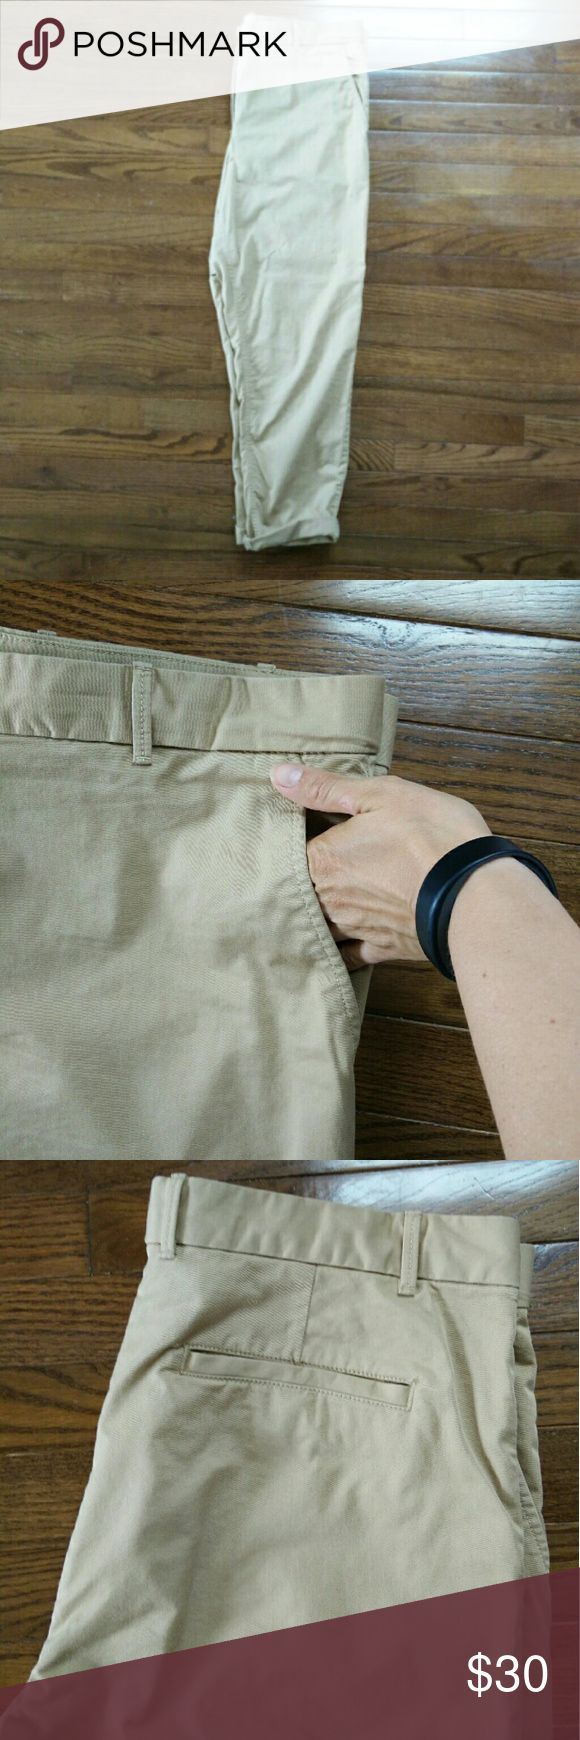 """Gap Broken-in Straight Khakis These pants are made of stretch cotton and are perfect lightweight pants. They can be rolled up as shown or worn unrolled (29"""" inseam). GAP Pants Straight Leg"""